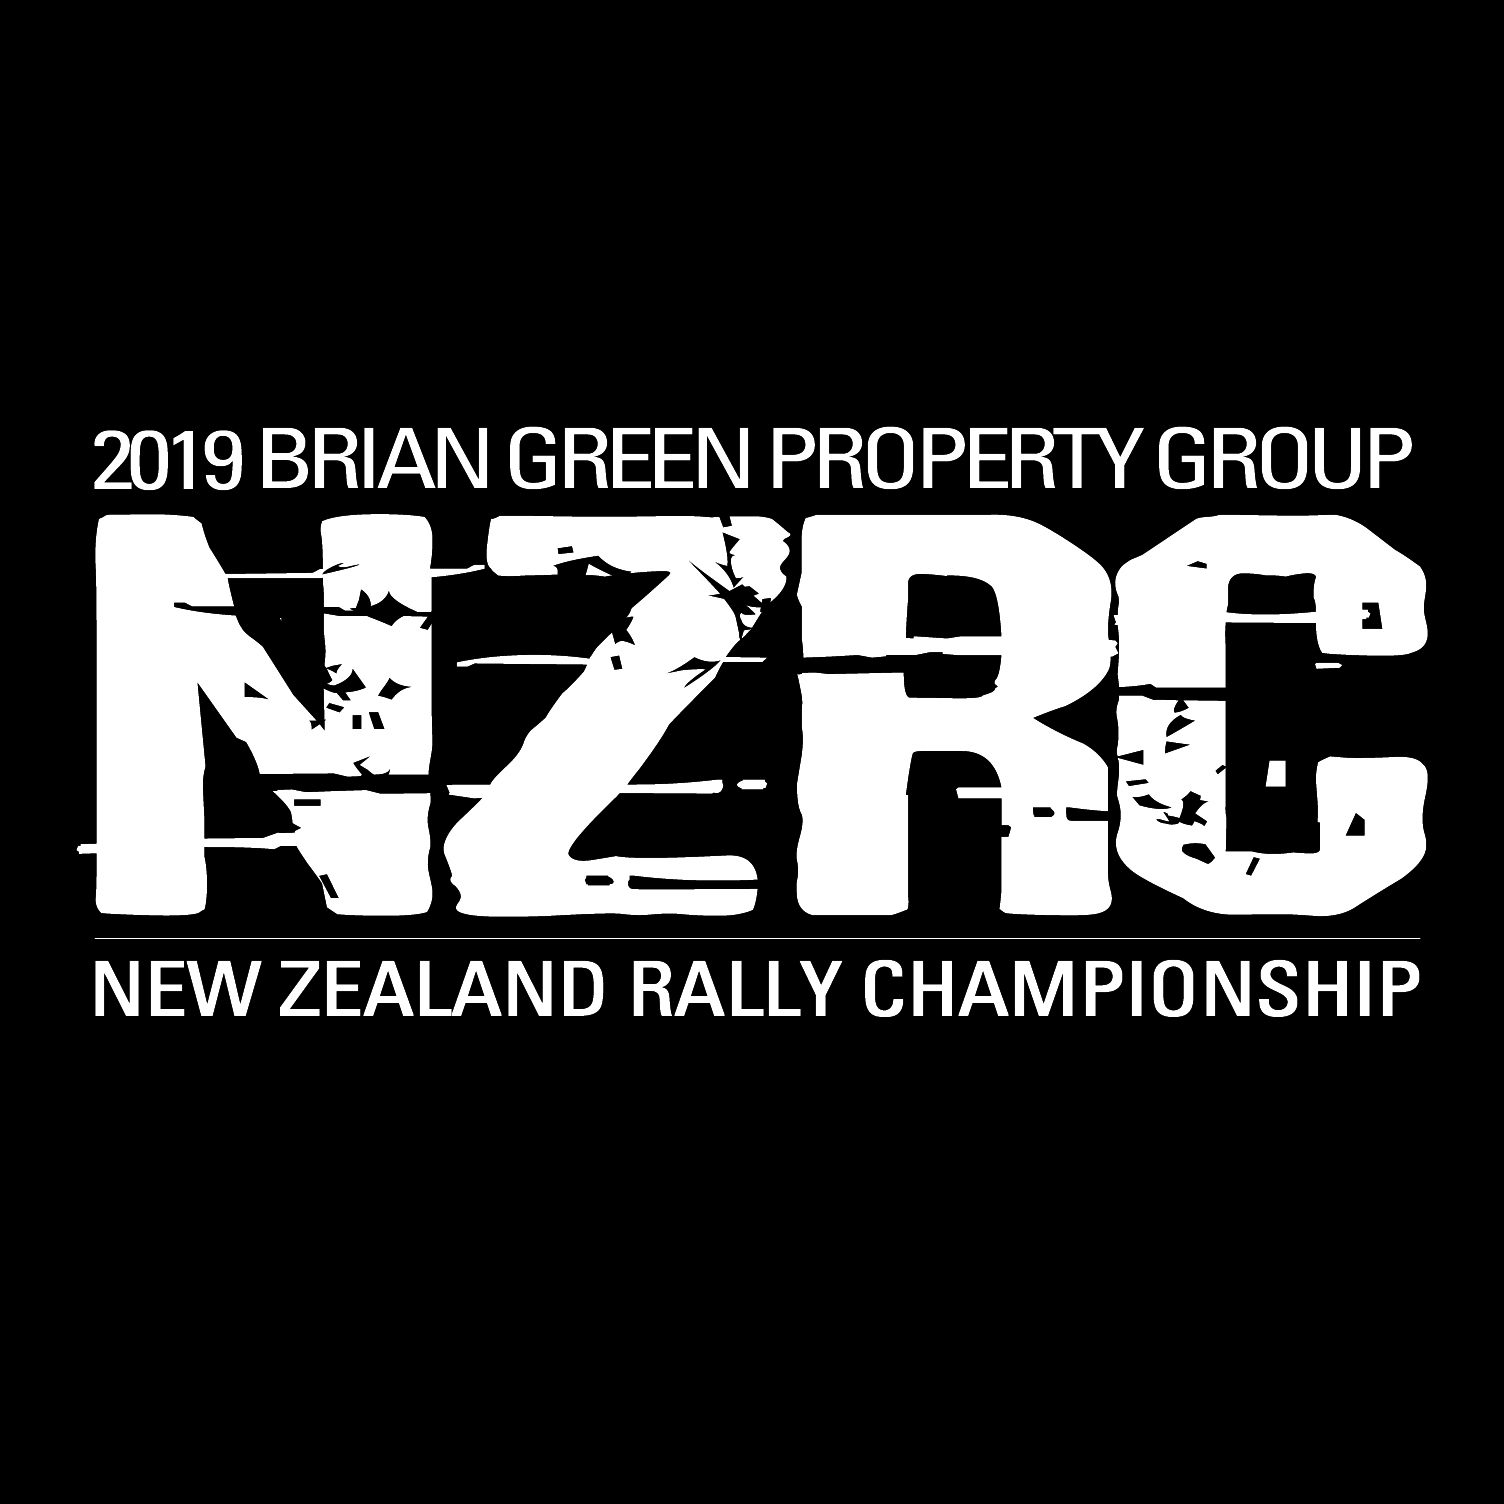 Trans-Tasman battle heads record NZRC field at Coromandel | :: Brian Green Property Group New Zealand Rally Championship ::